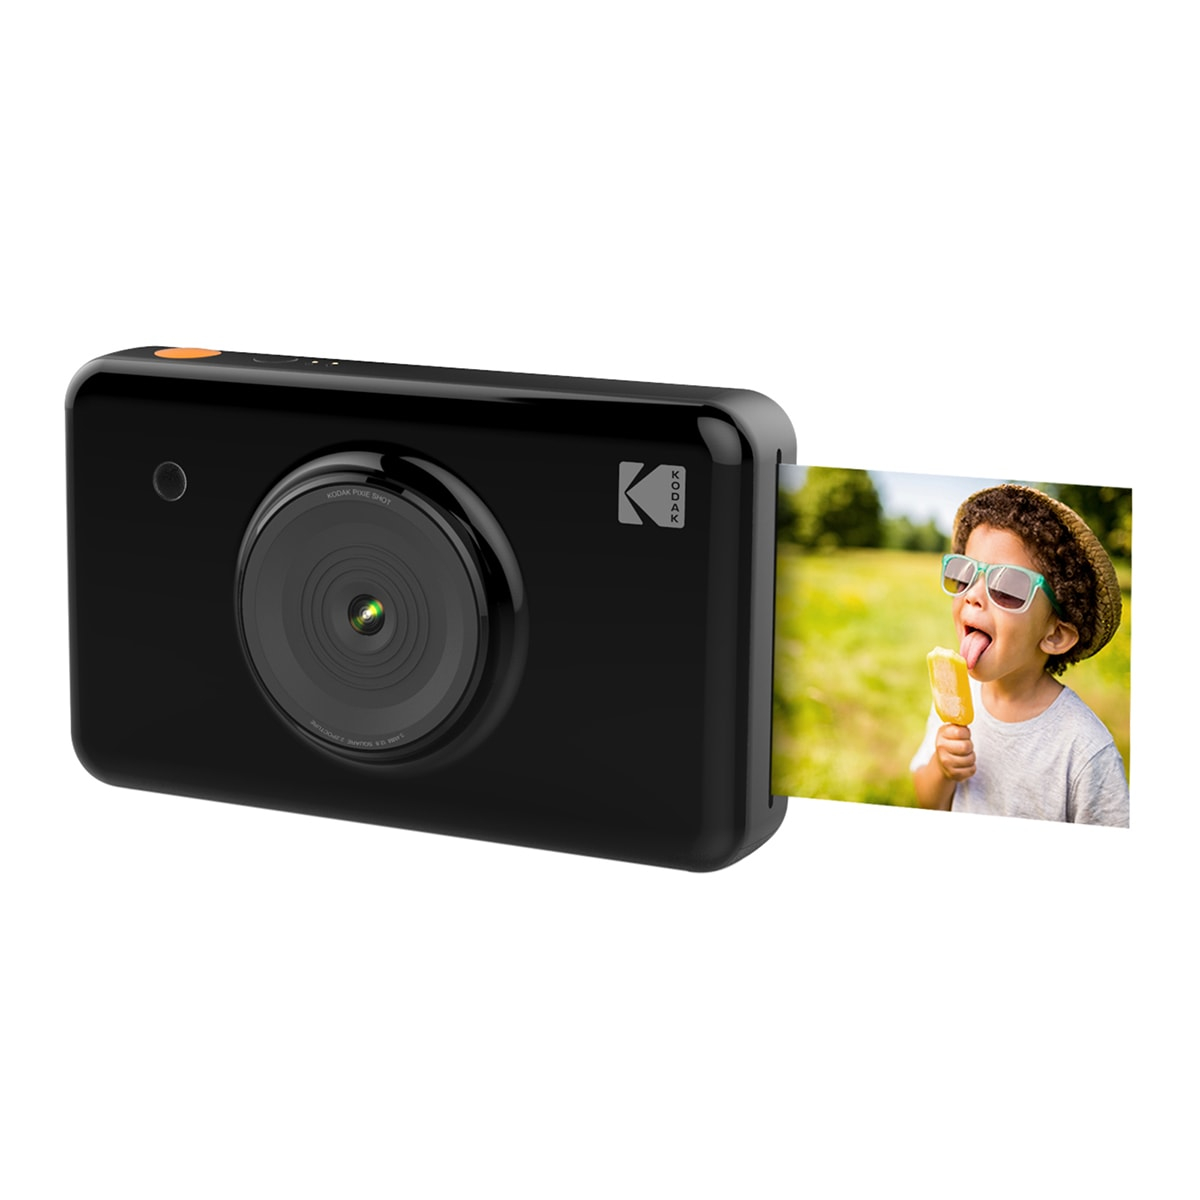 Fotocamera digitale wireless a stampa istantanea 10MP all-in-one Ink